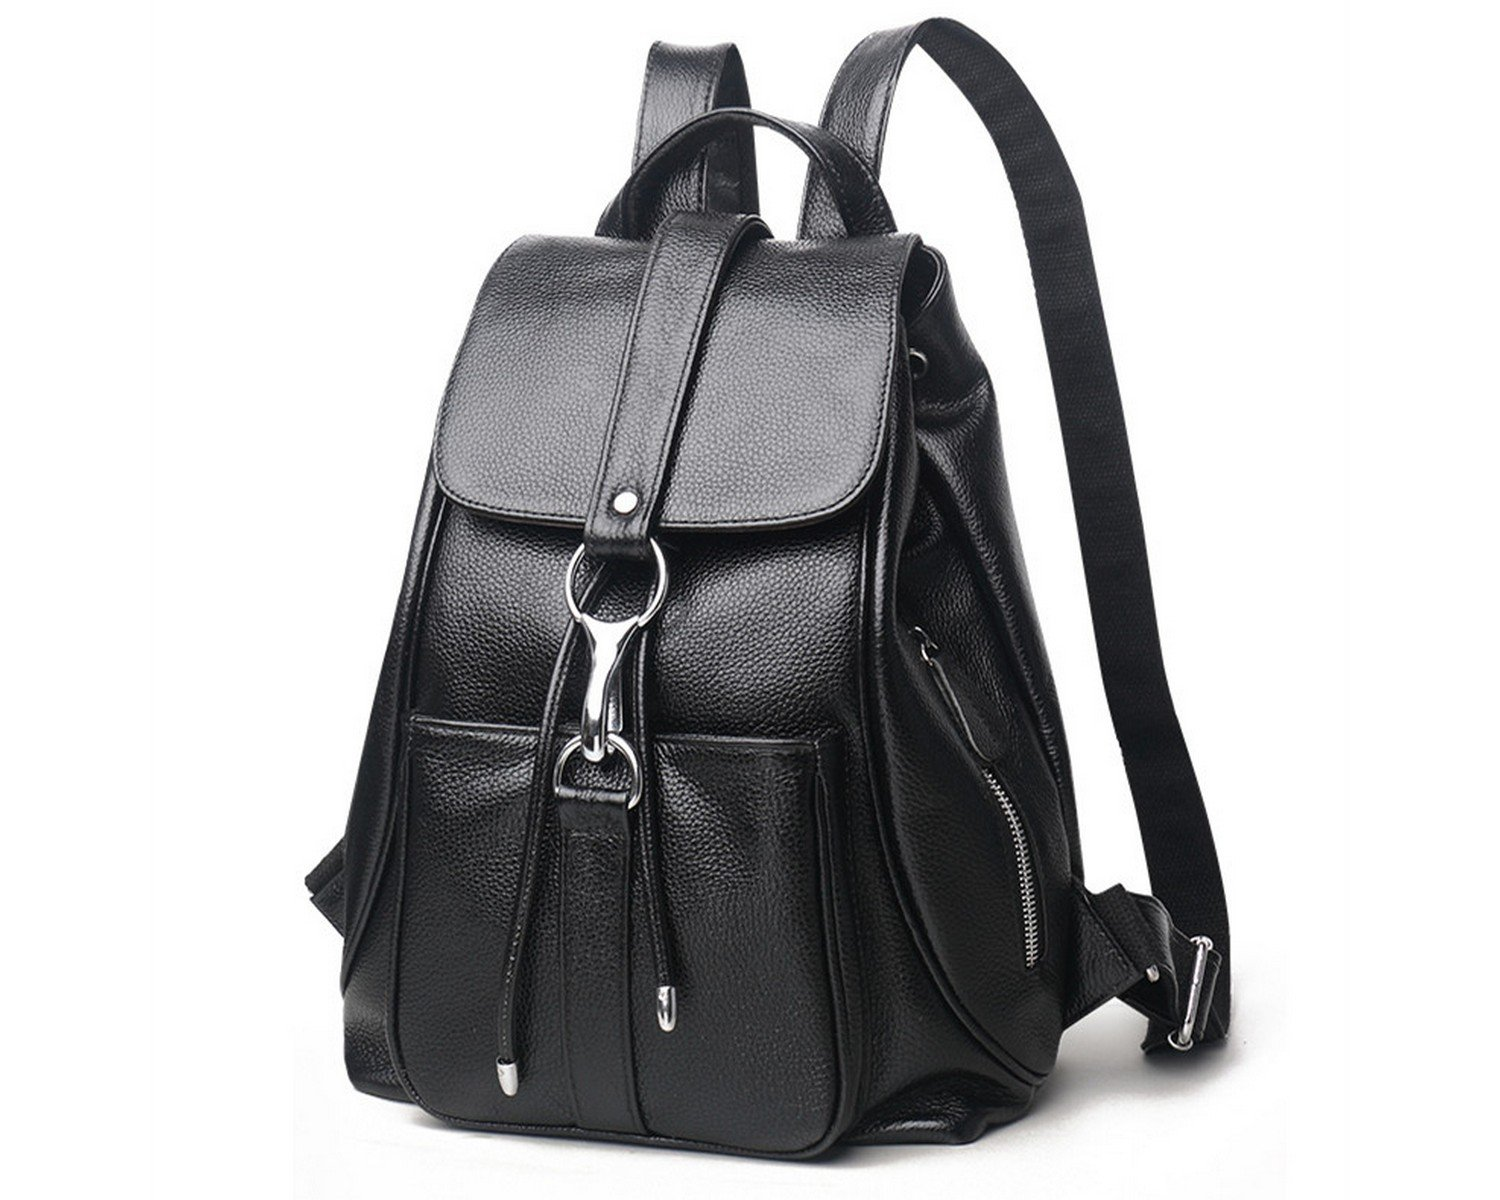 Women Black Vintage Real Genuine Leather Backpack Purse Travel Bag Schoolbag,Travel Shoulder Bag By CLAIRE CC by CLAIRE CC (Image #1)